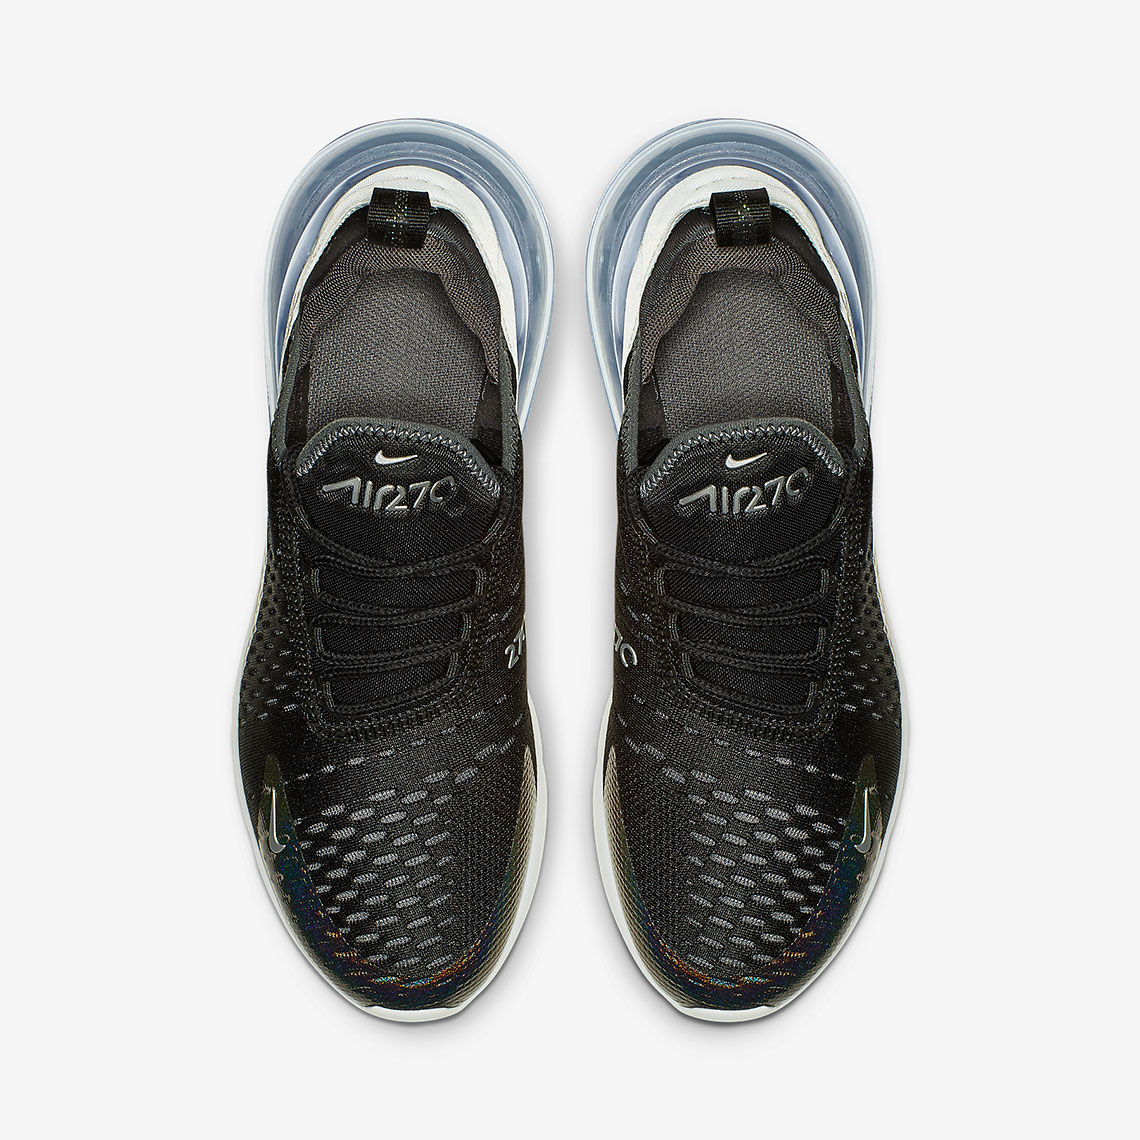 Nike Air Max 270 + 95 Y2K BQ9240 001 AT8091 001 Release Info